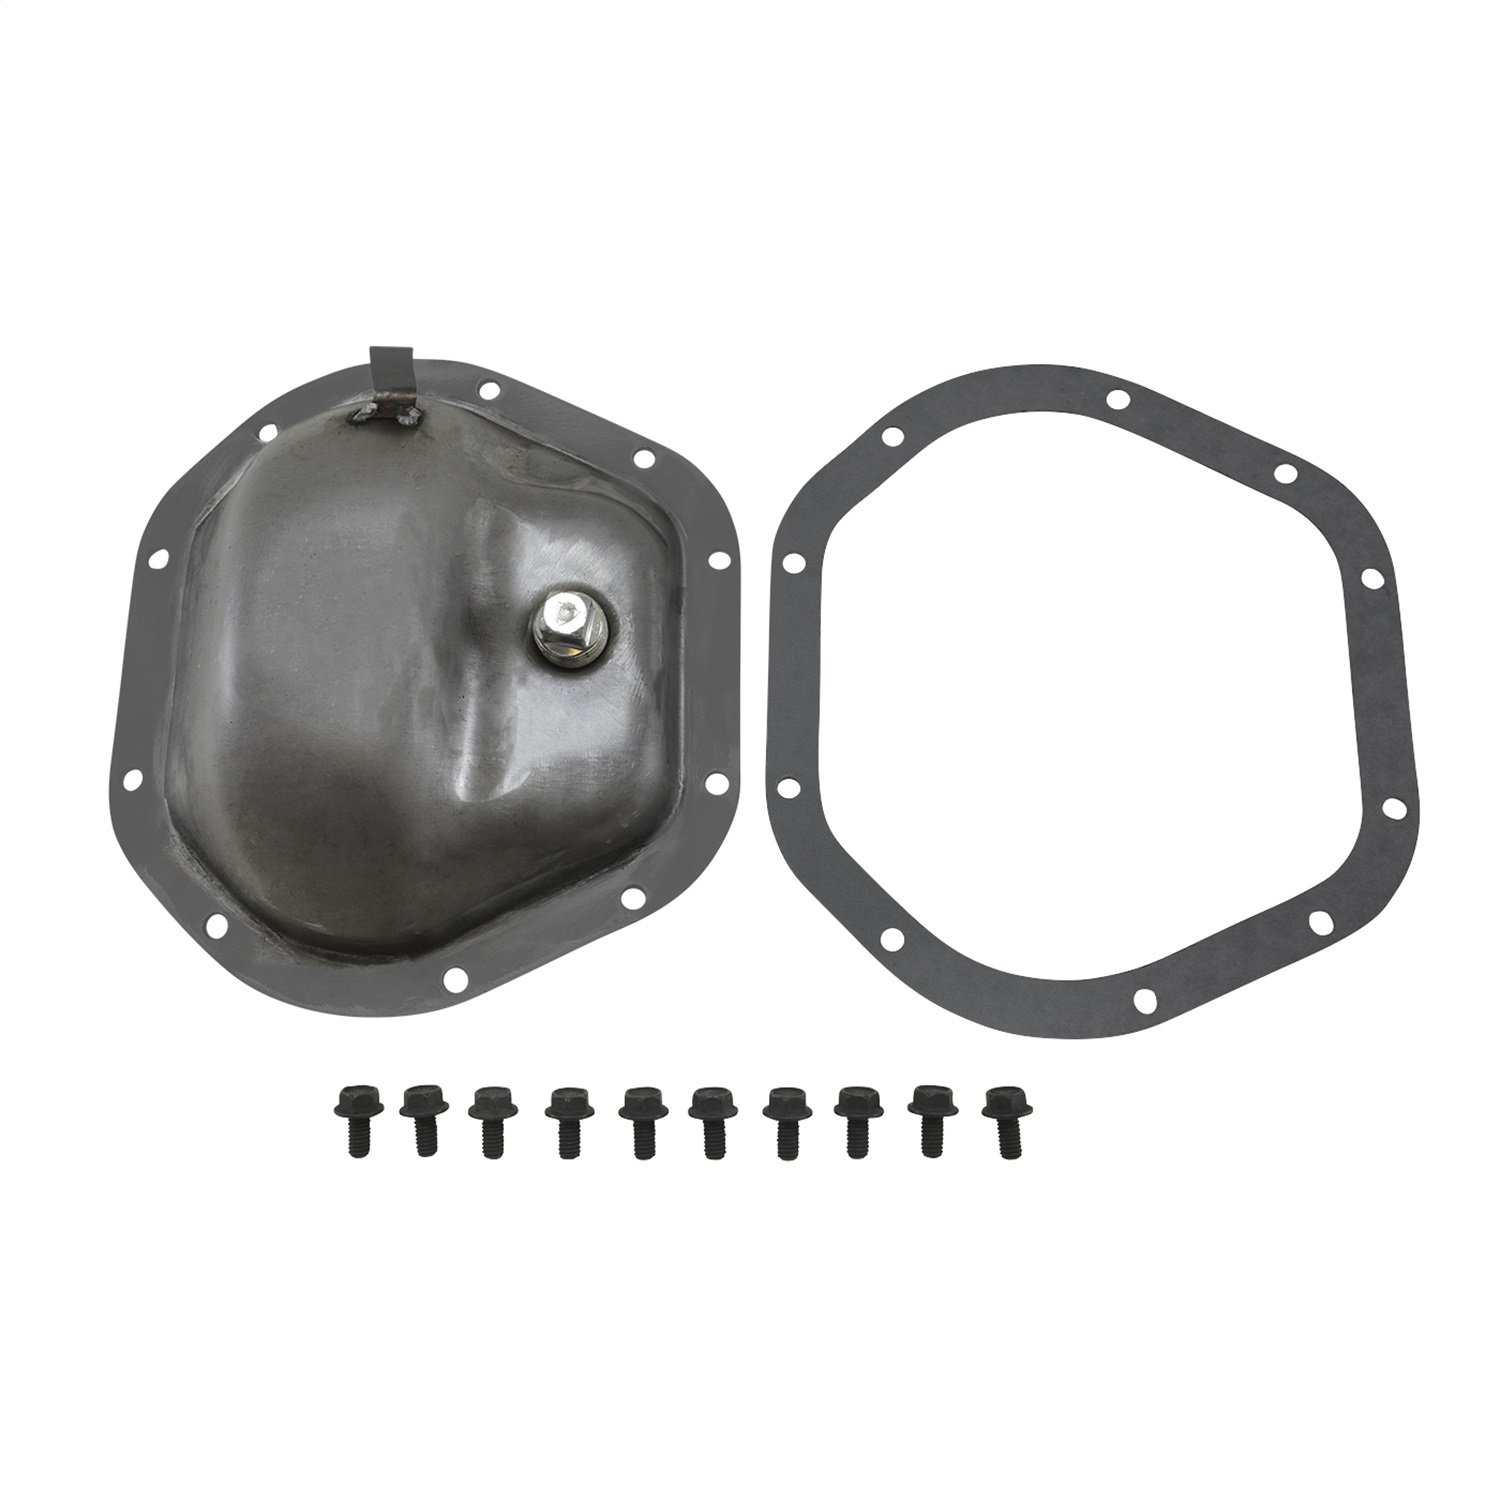 Yukon (YP C5-D44-REV) Steel Cover for Dana 44 Reverse Rotation Differential